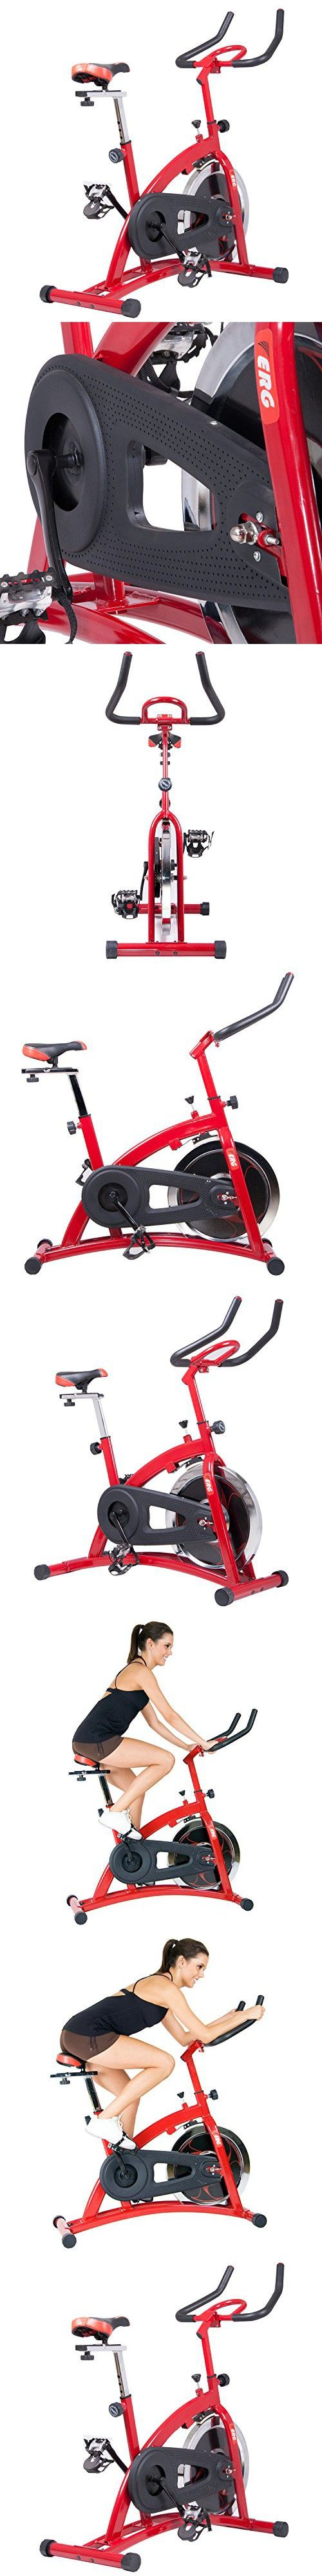 Body Champ Pro Cycle Trainer, Red/Black